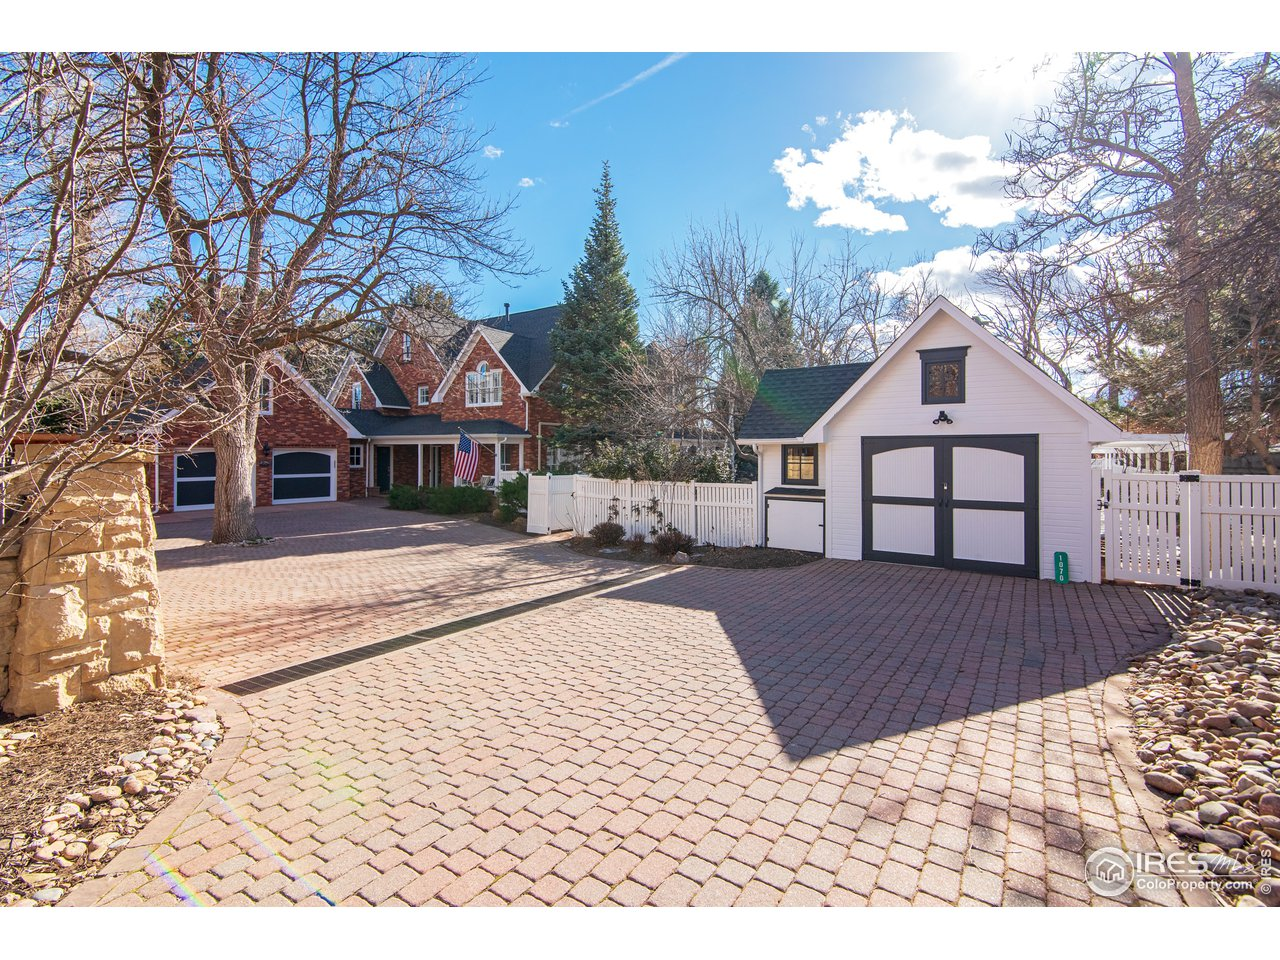 Driveway entry with detached one car garage